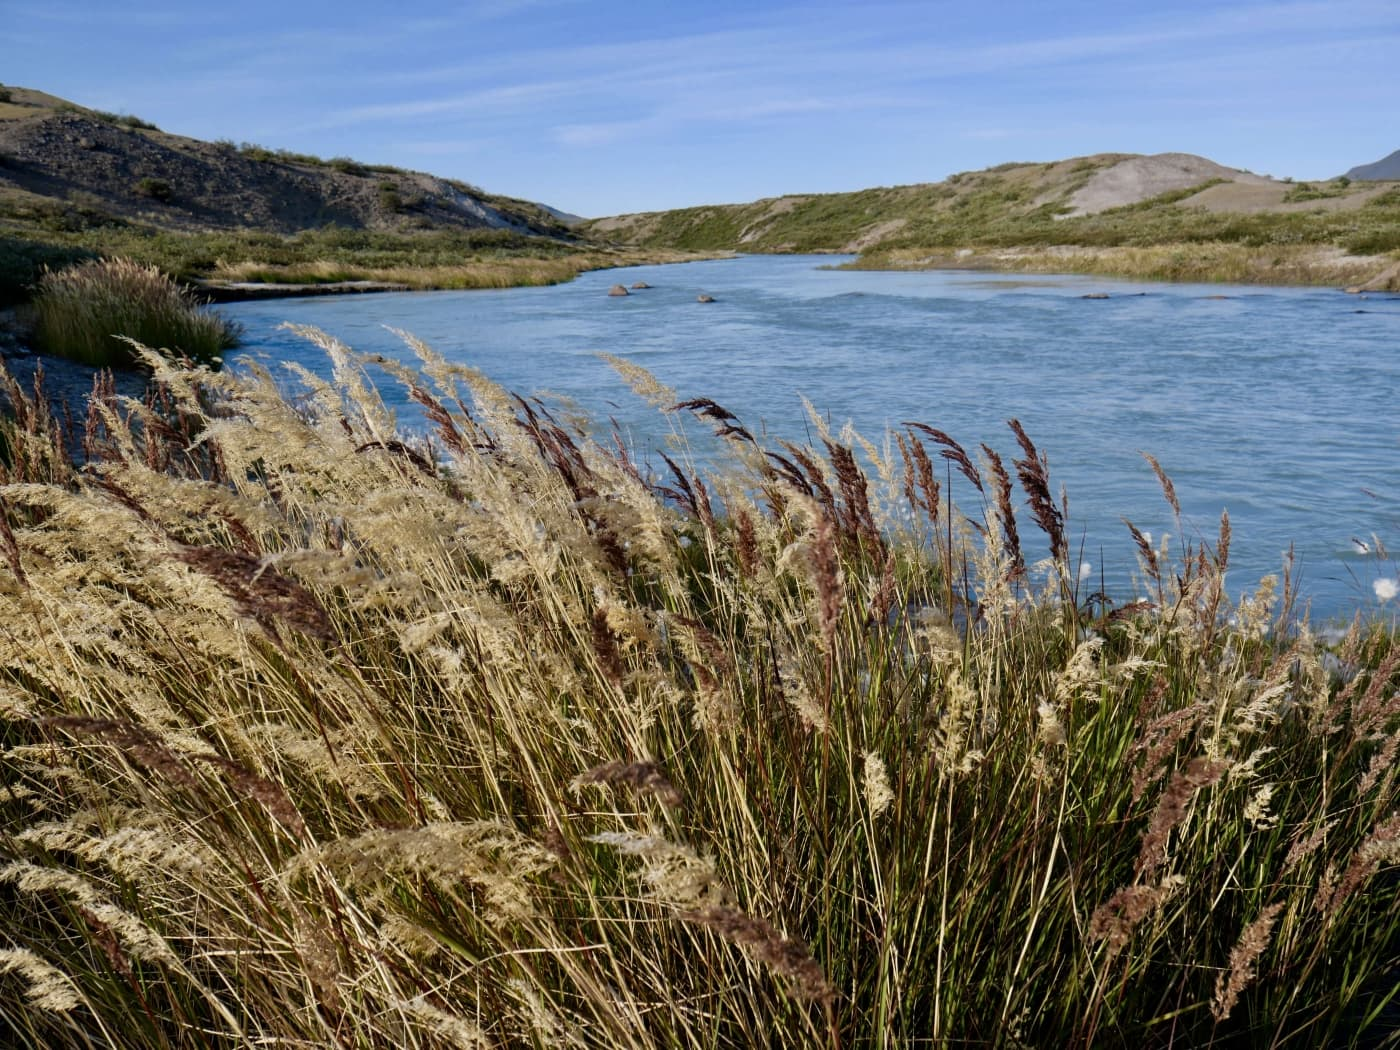 UNESCO area Aasivissuit lake view in Summer. Photo by Katrin Stolley - Visit Greenland